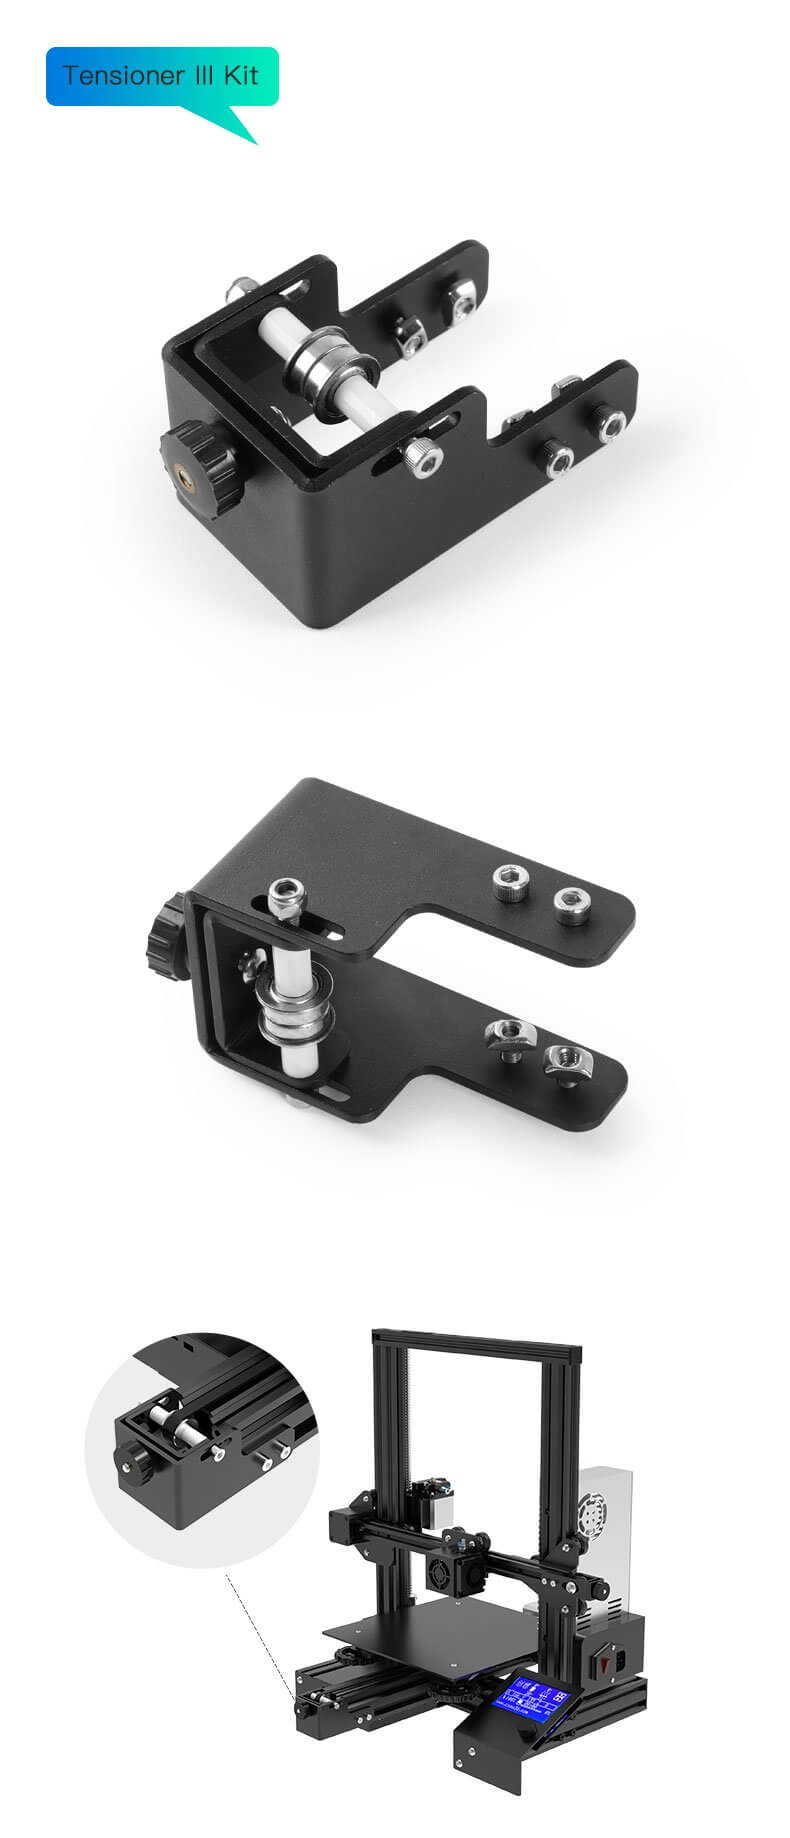 Upgraded X/Y-axis Synchronous Belt Tensioner